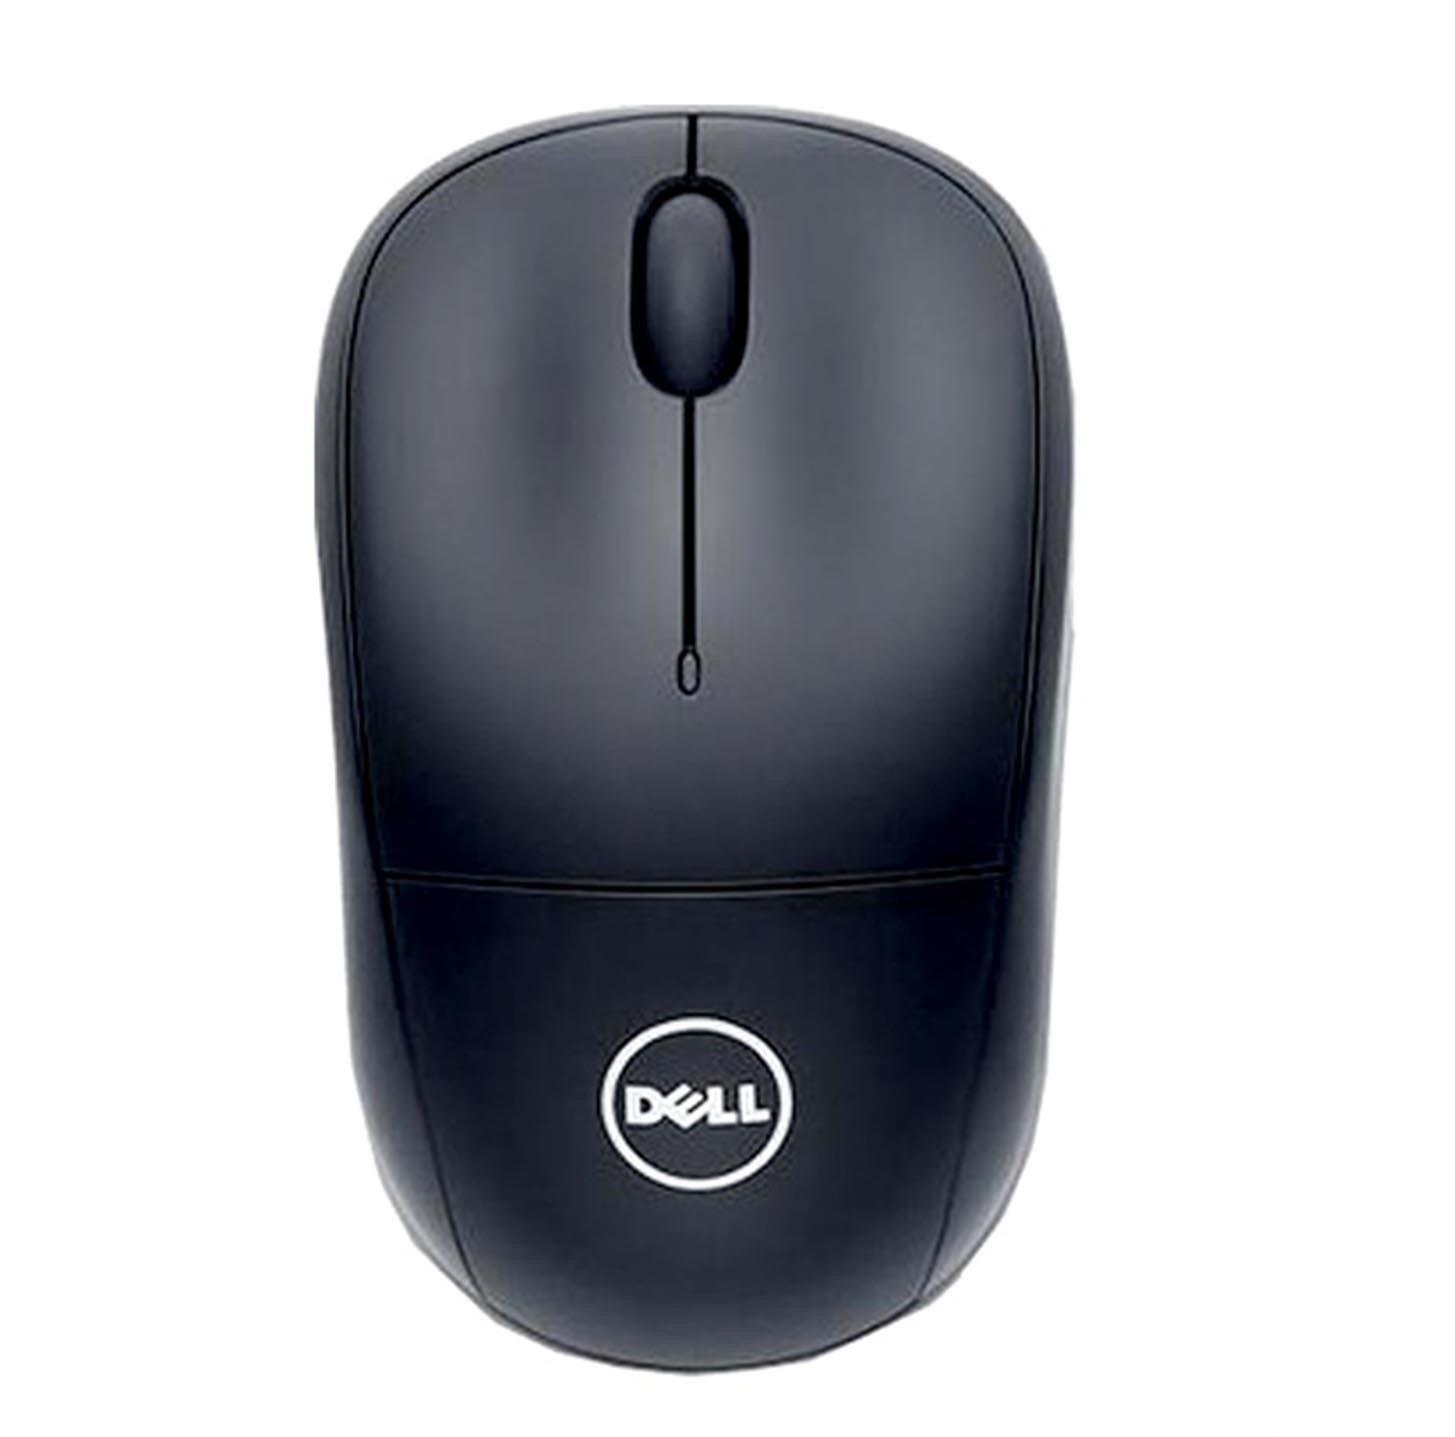 Dell Wireless Optical Mouse WM 01 Image